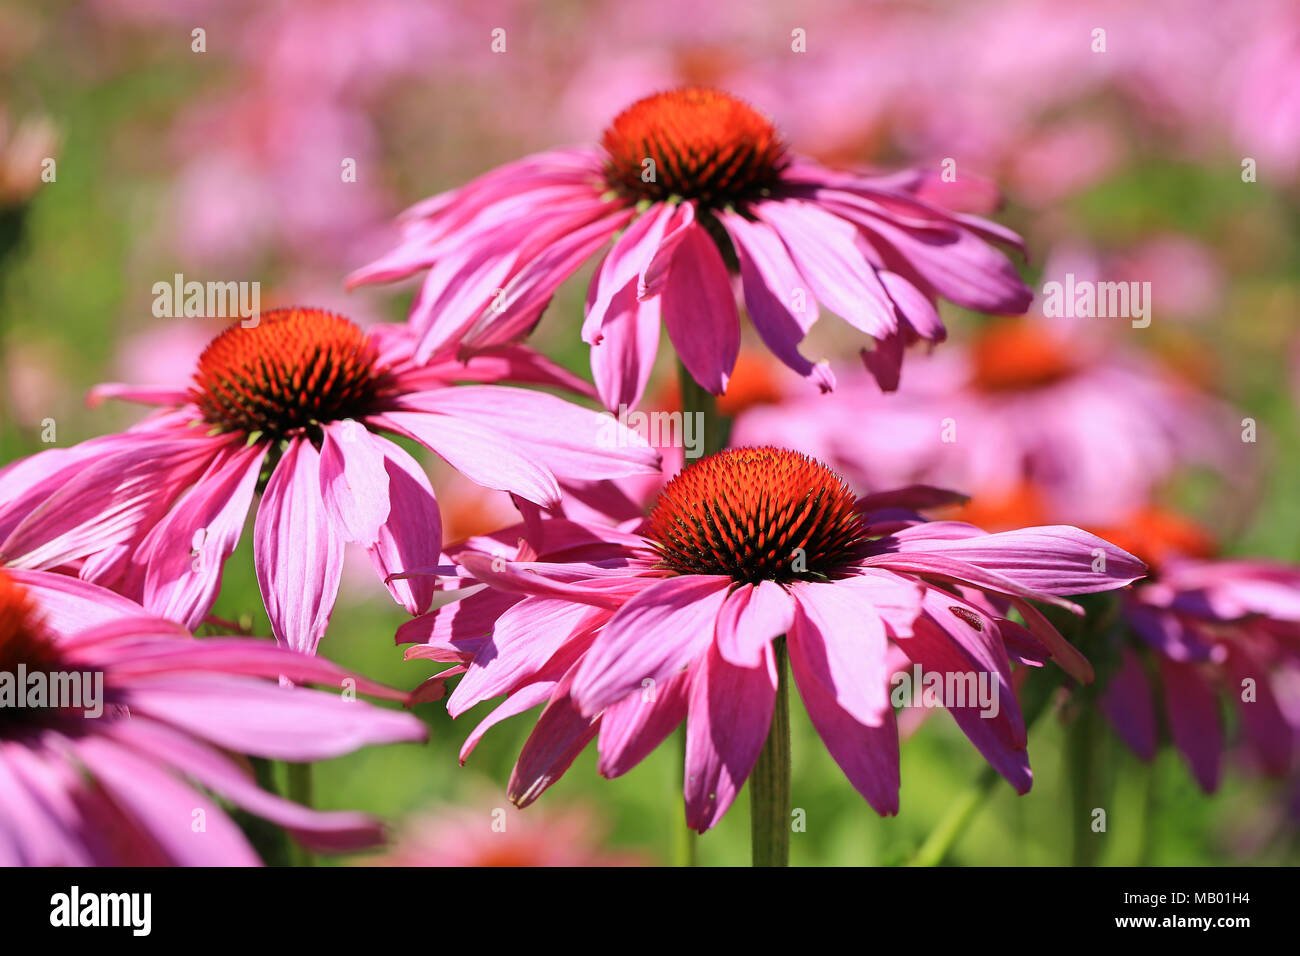 Flowers of Echinacea purpurea or Eastern Purple Coneflower blossoming in the garden at summer. - Stock Image